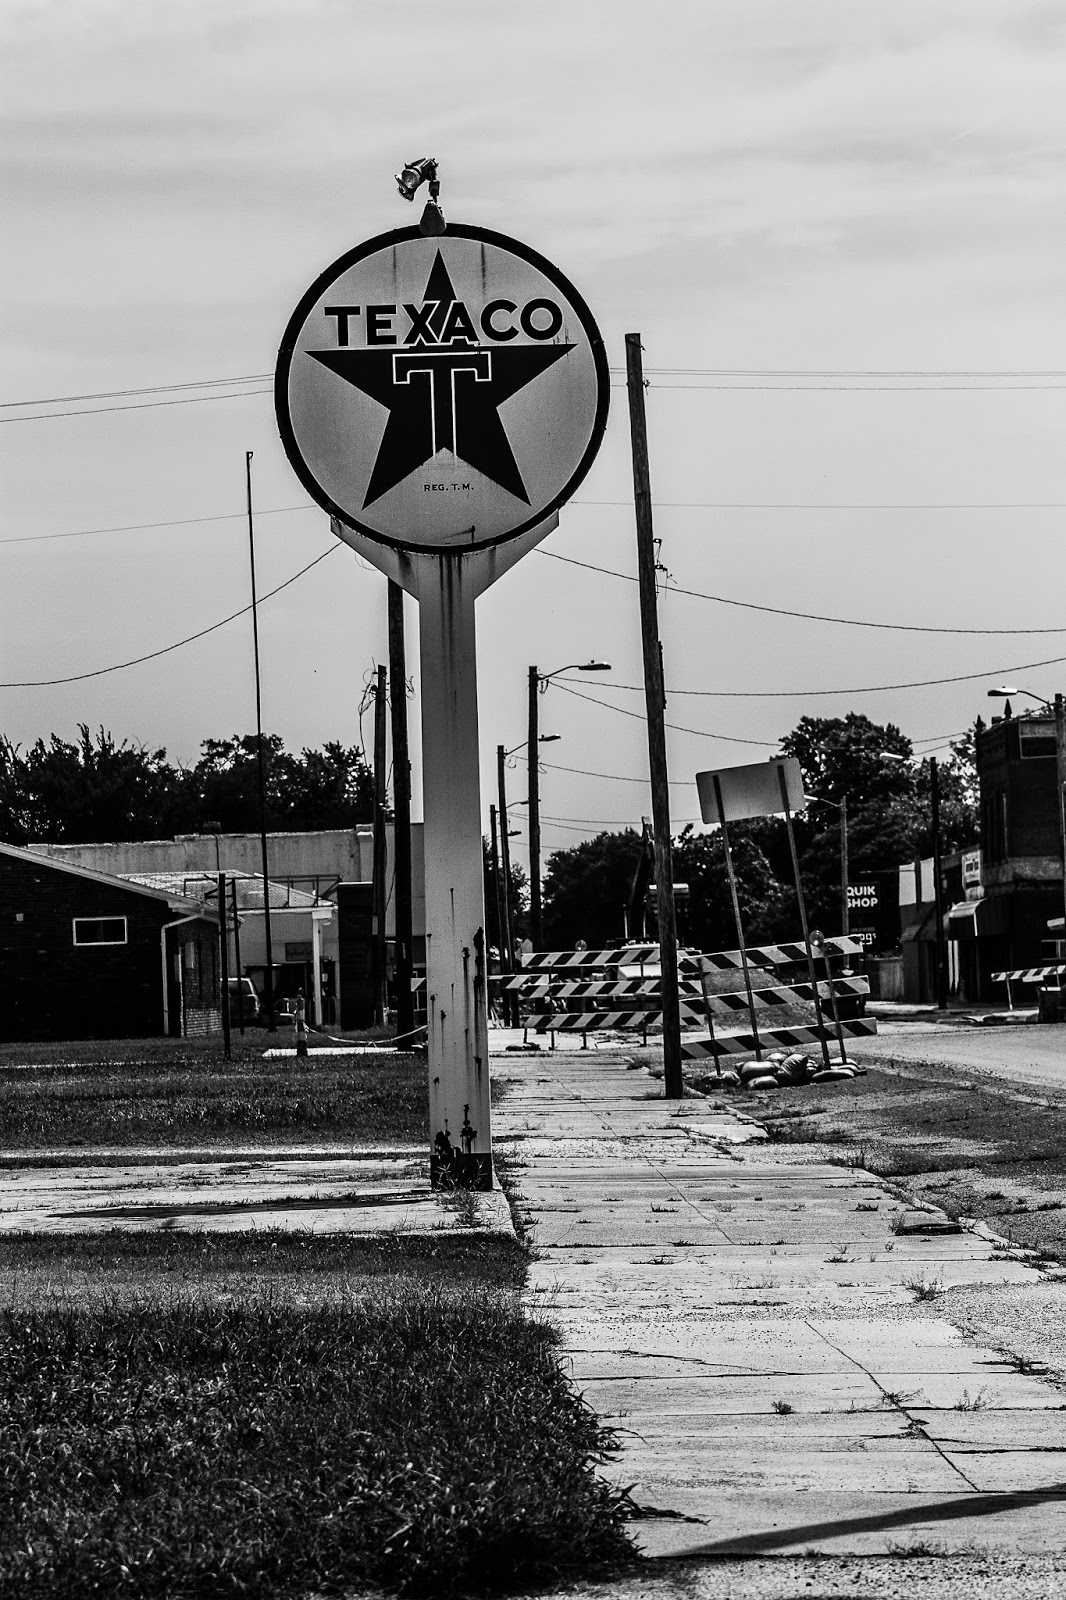 Texaco the history of an American Gas Station! | Michael Rodgers